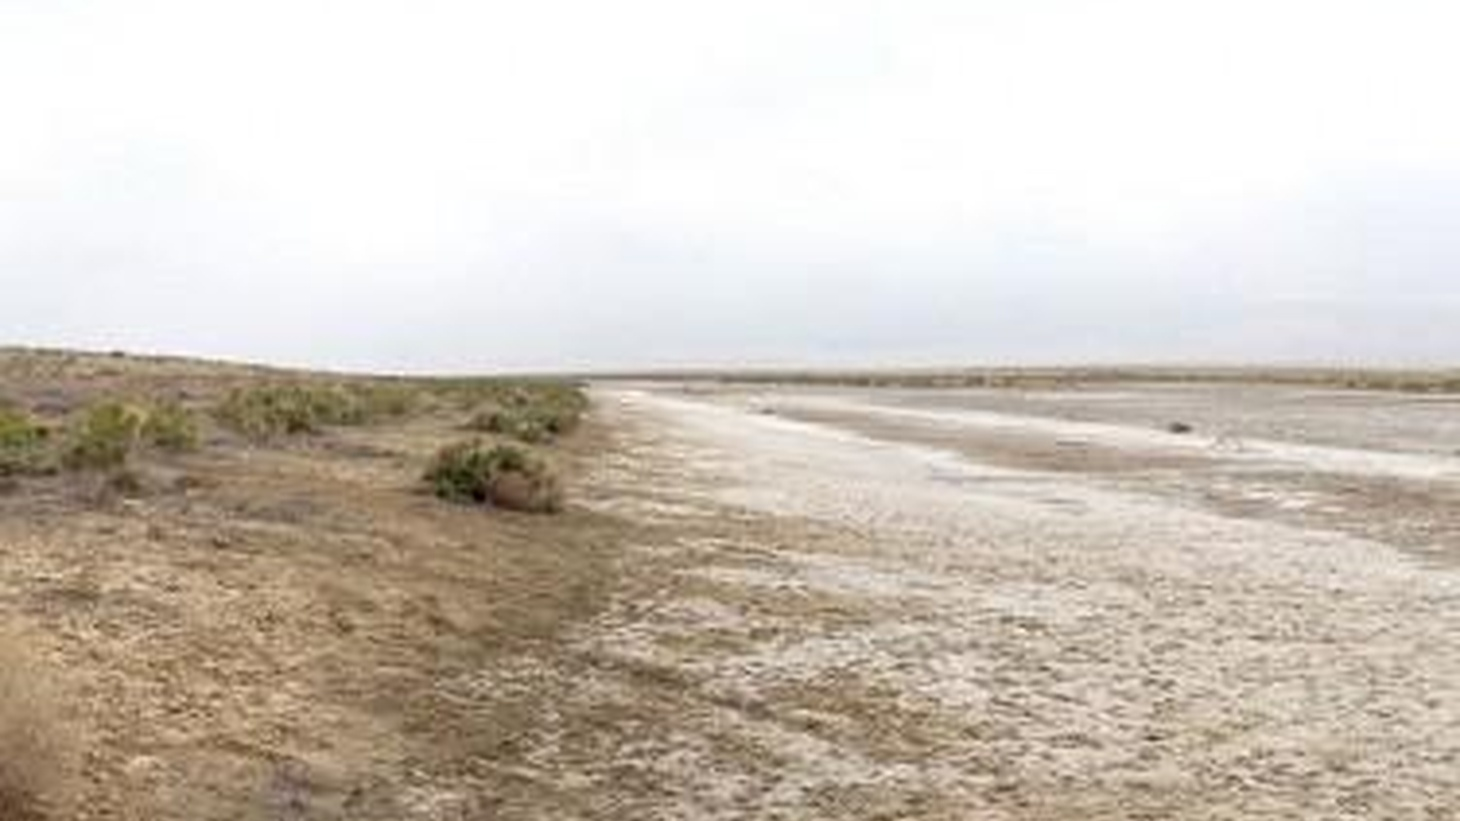 Can the Southland grow if drought is the new normal? Hadley Arnold says yes,with architecture that acts as a sponge. Plus, Dave Hickey, Maura Lucking and Gideon Brower.